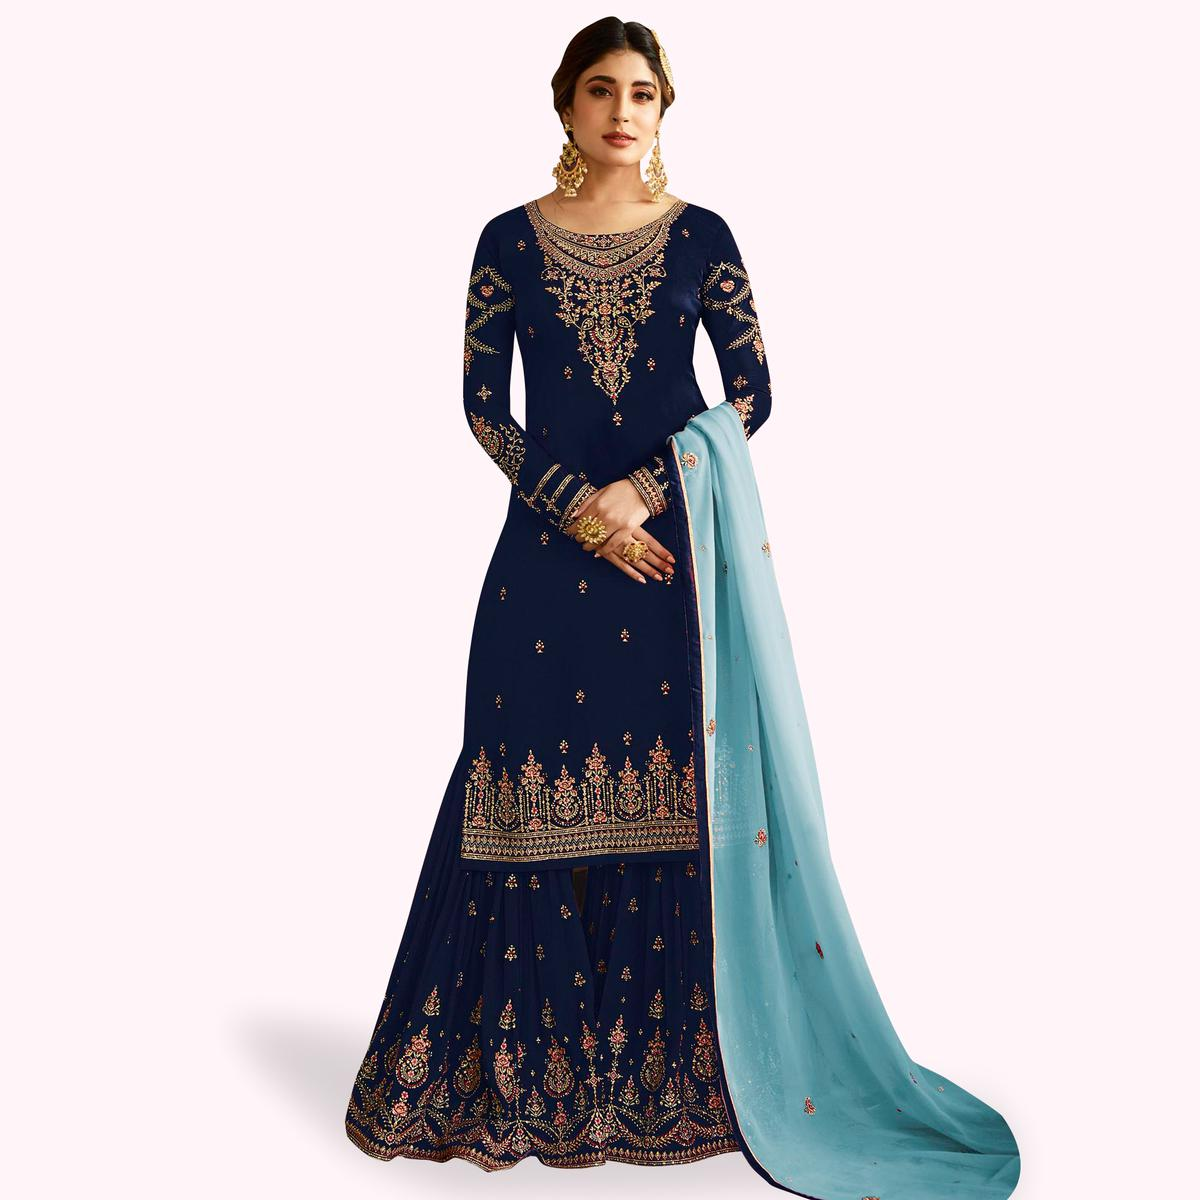 Capricious Navy Blue Colored Partywear Embroidered Faux Georgette Palazzo Suit